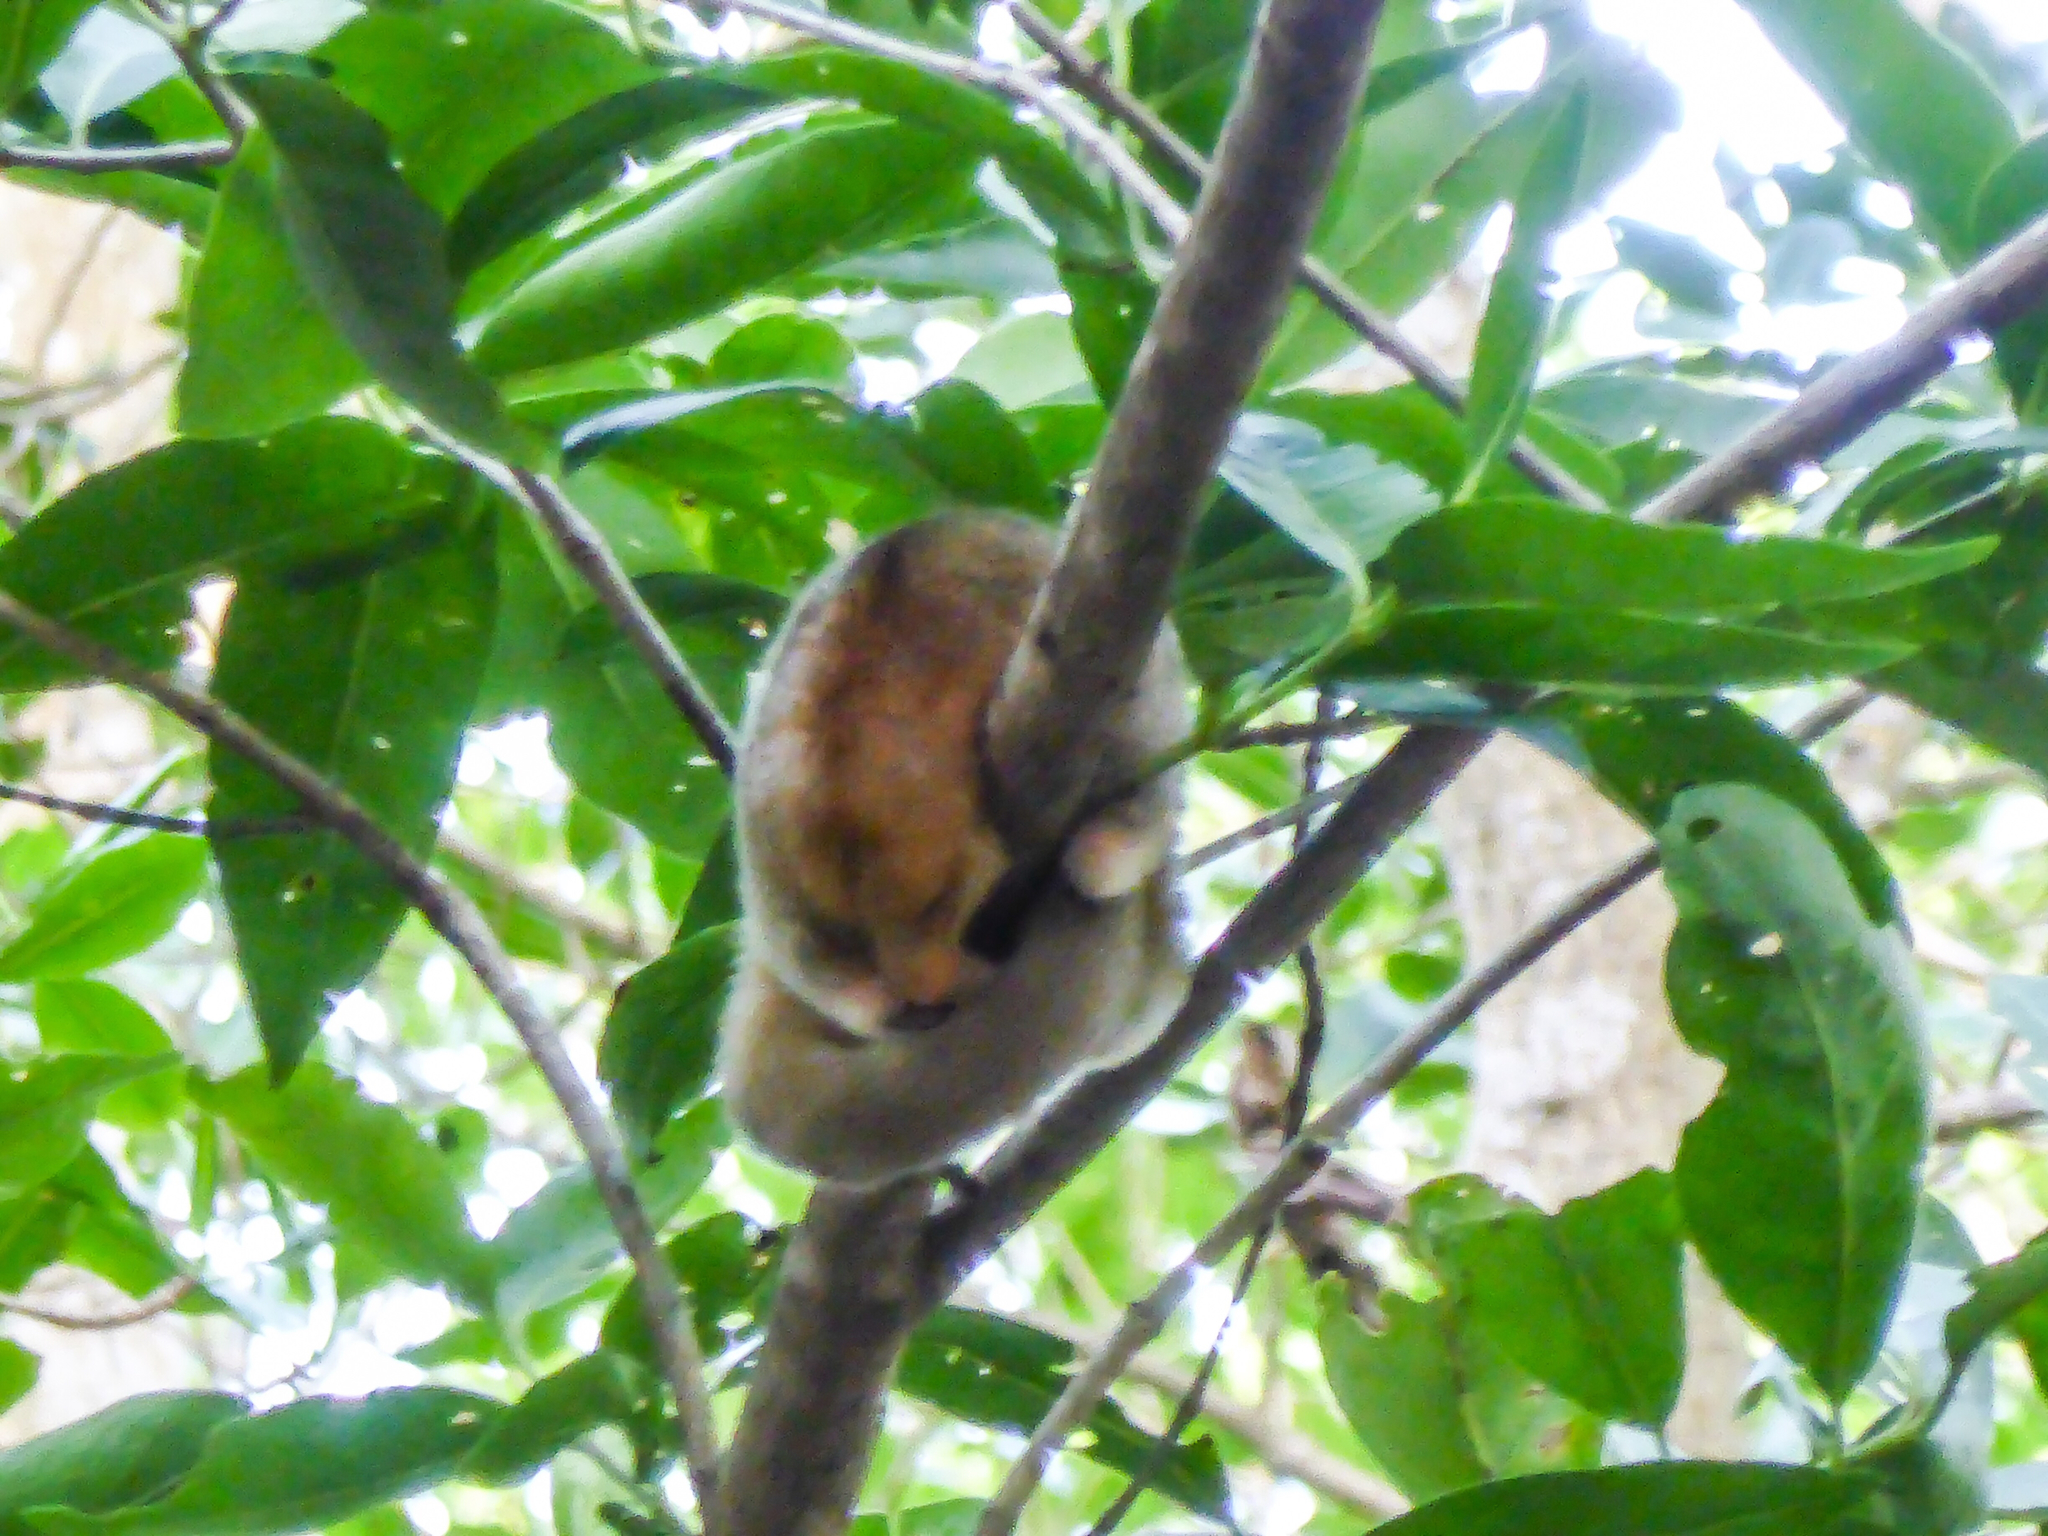 Image of Silky Anteater